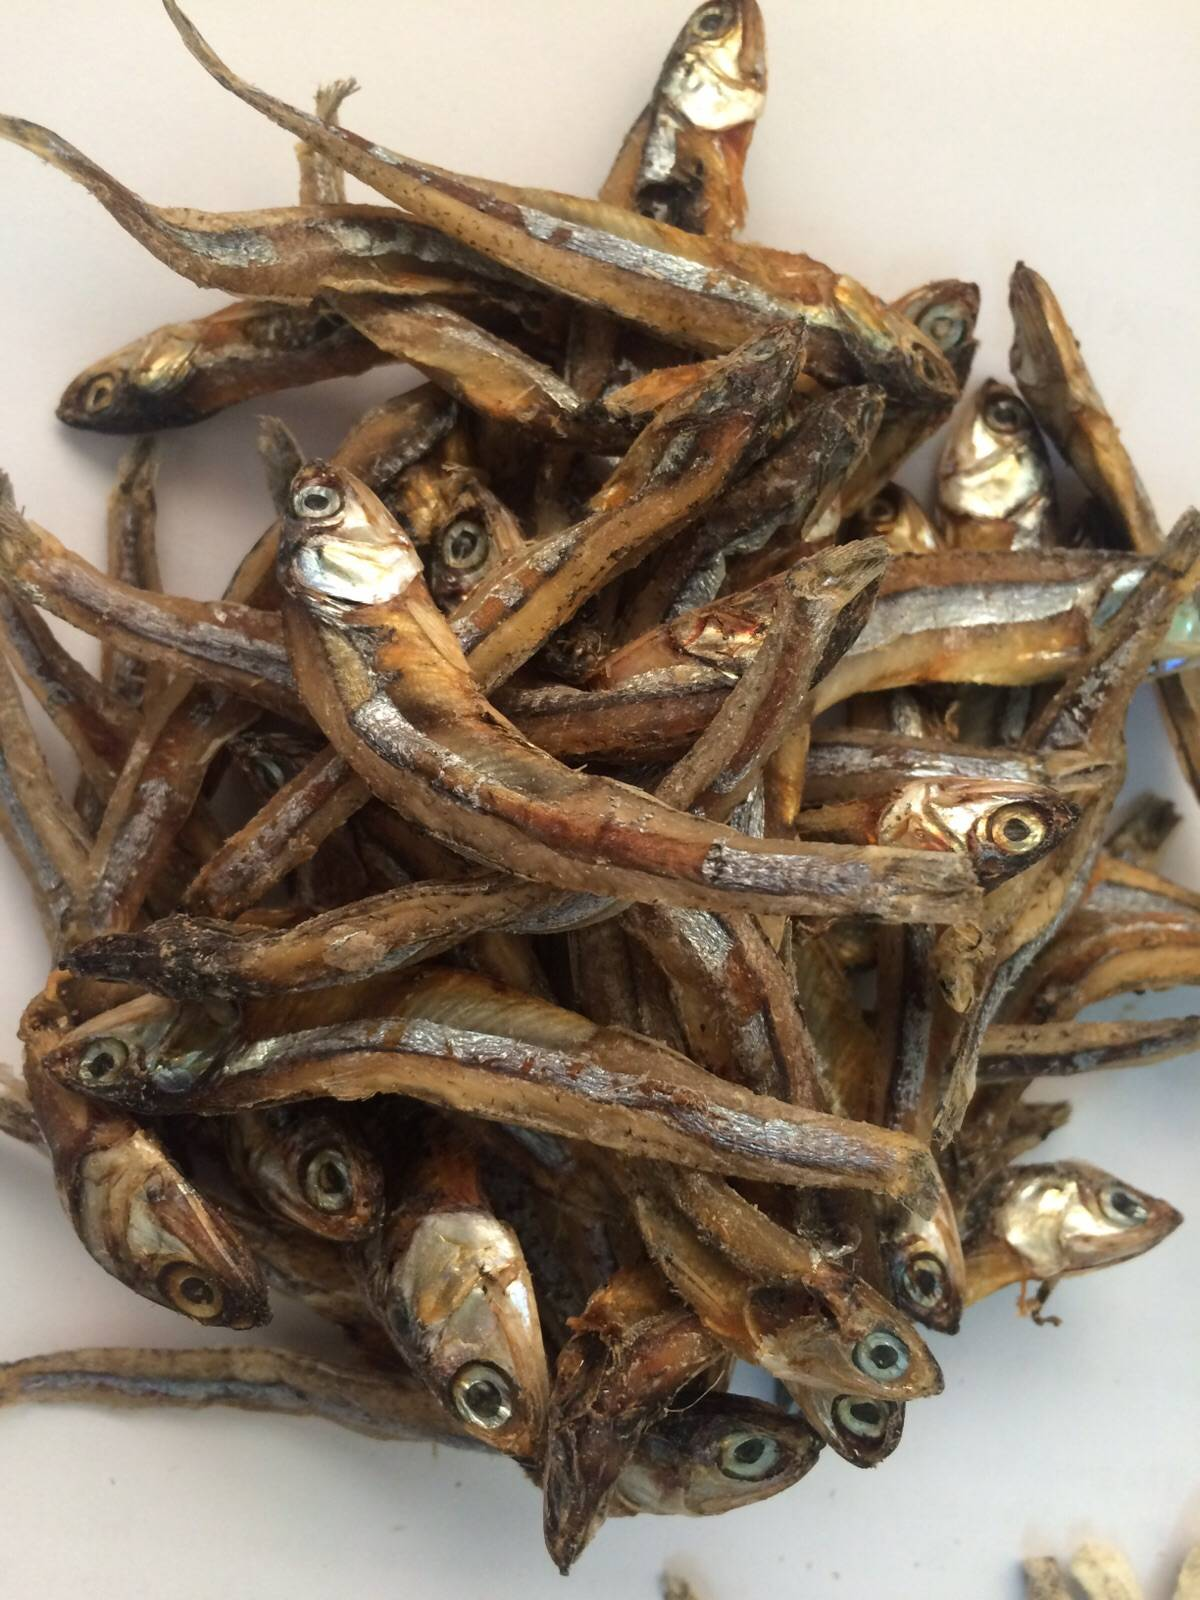 Looking for Dried Anchovy Fish export to Sri Lanka